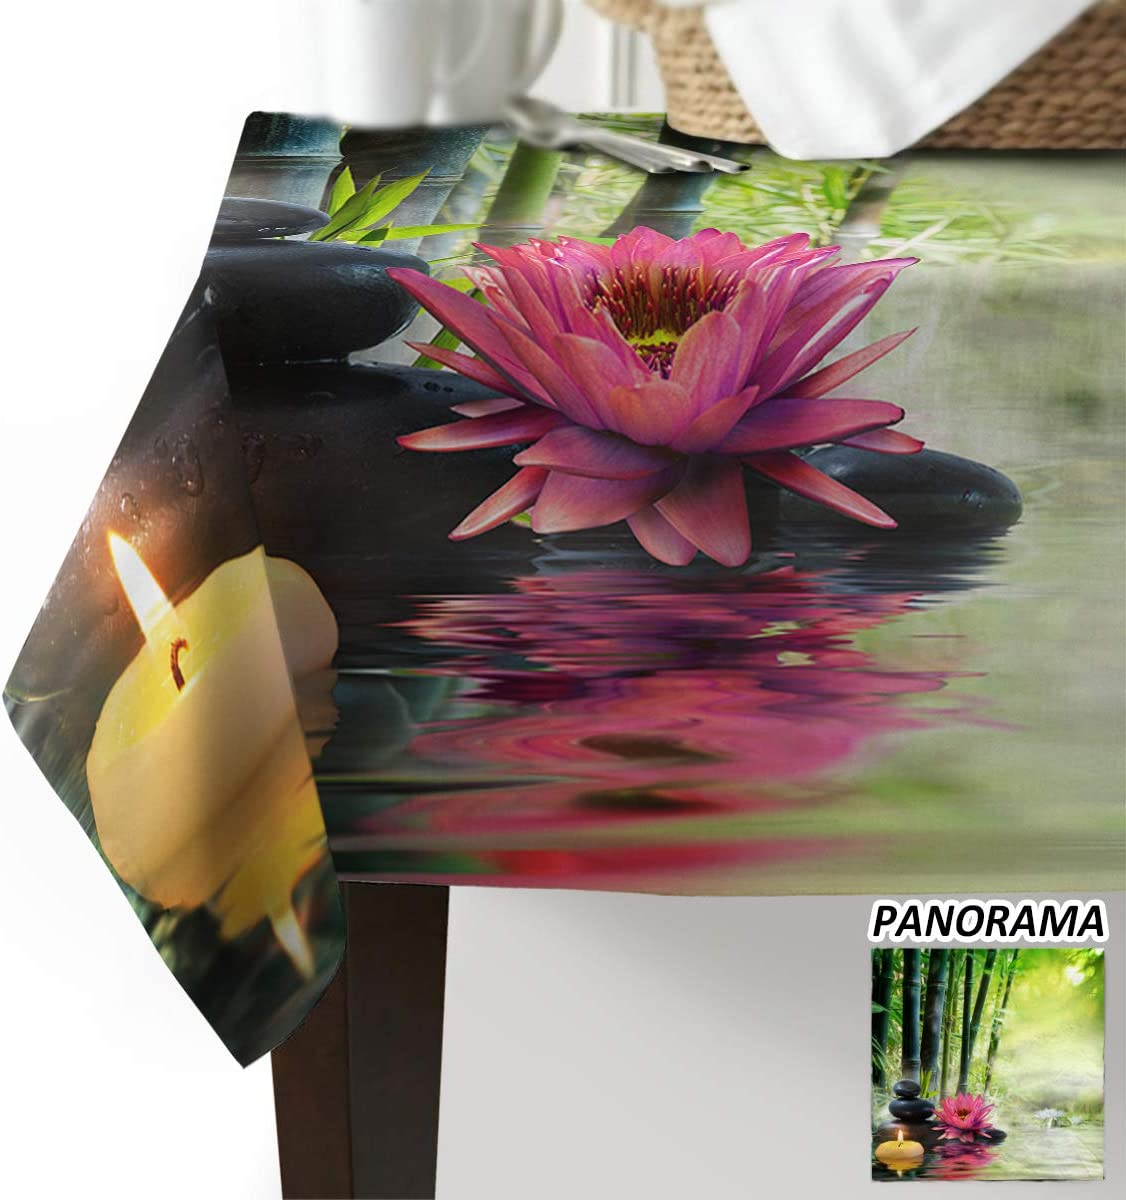 Royalreal Rectangle Table Cloth Oil-Proof Spill-Proof Tablecloth Chinese Style Bamboo Stone Lotus Flower Decorative Table Cover for Indoor and Outdoor Use 60x104 inch